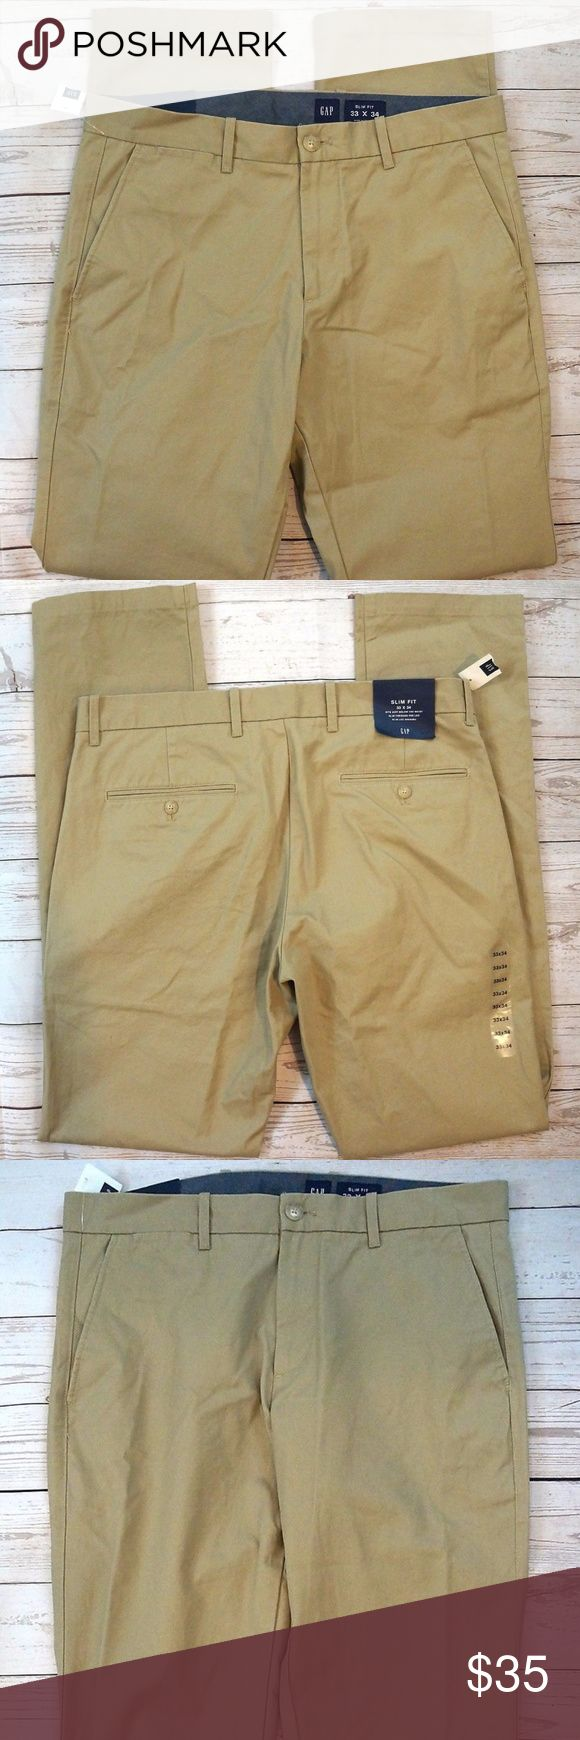 """Gap Slim Fit Clean Khaki Chino Academy Pants Gap Slim Fit Clean Khaki Chino Academy Mens Pants Size 33 X 34 NWT   Hand Measurements: Waist: 33"""" Inseam: 34"""" Rise: 10.5"""" Thigh: 25"""" Leg Opening: 7.5""""  All orders are shipped within 24 hours of payment Monday through Friday  PM#2103 GAP Pants Chinos & Khakis"""